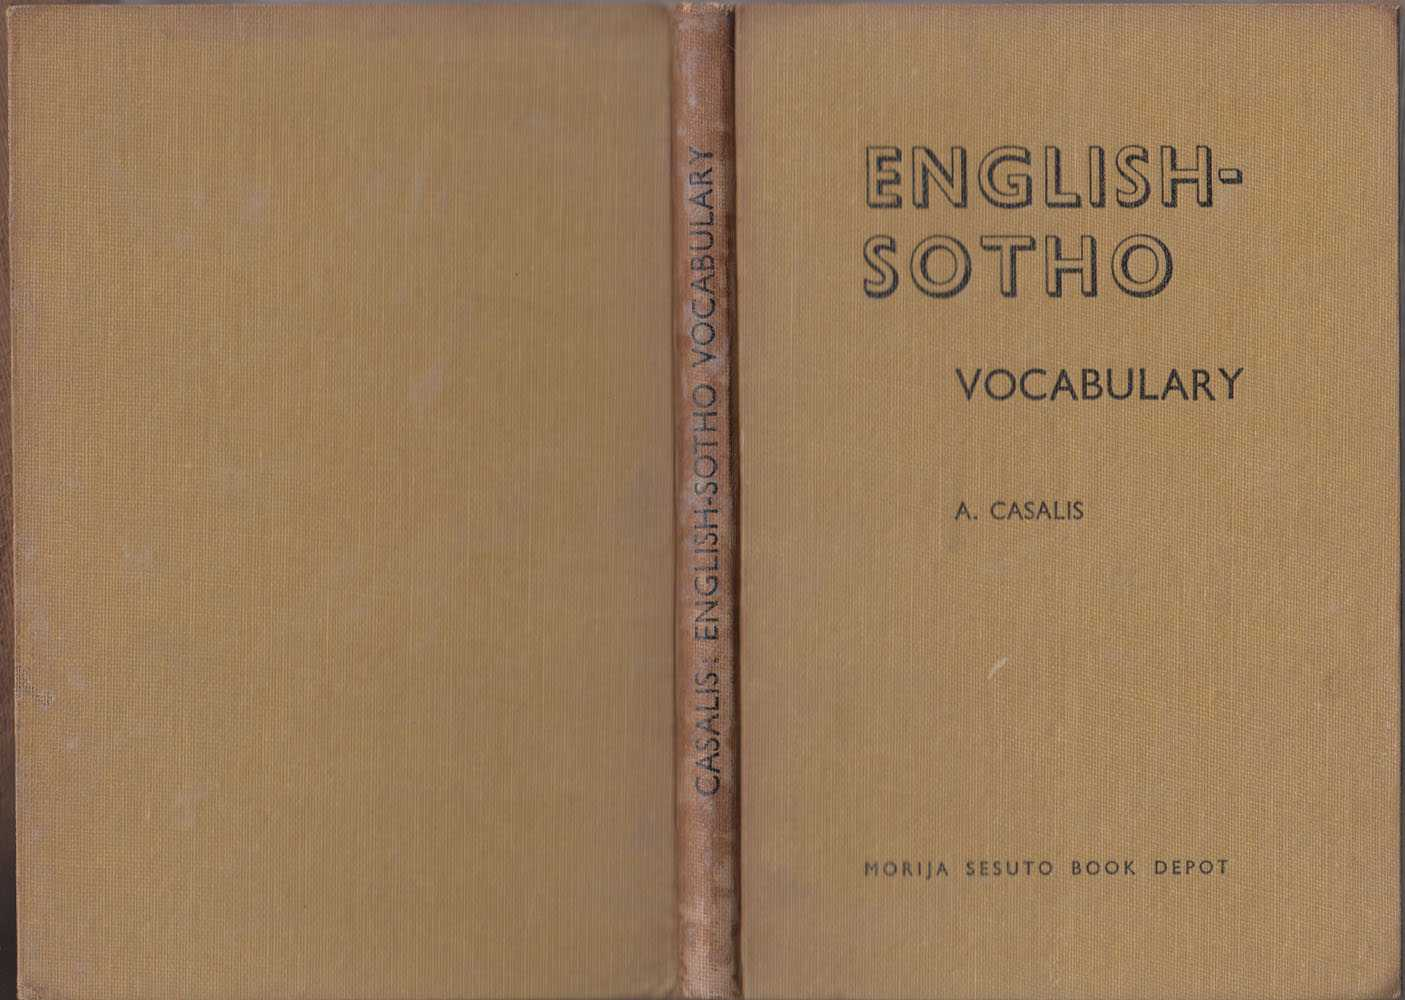 English-Sotho Vocabulary, Casalis A